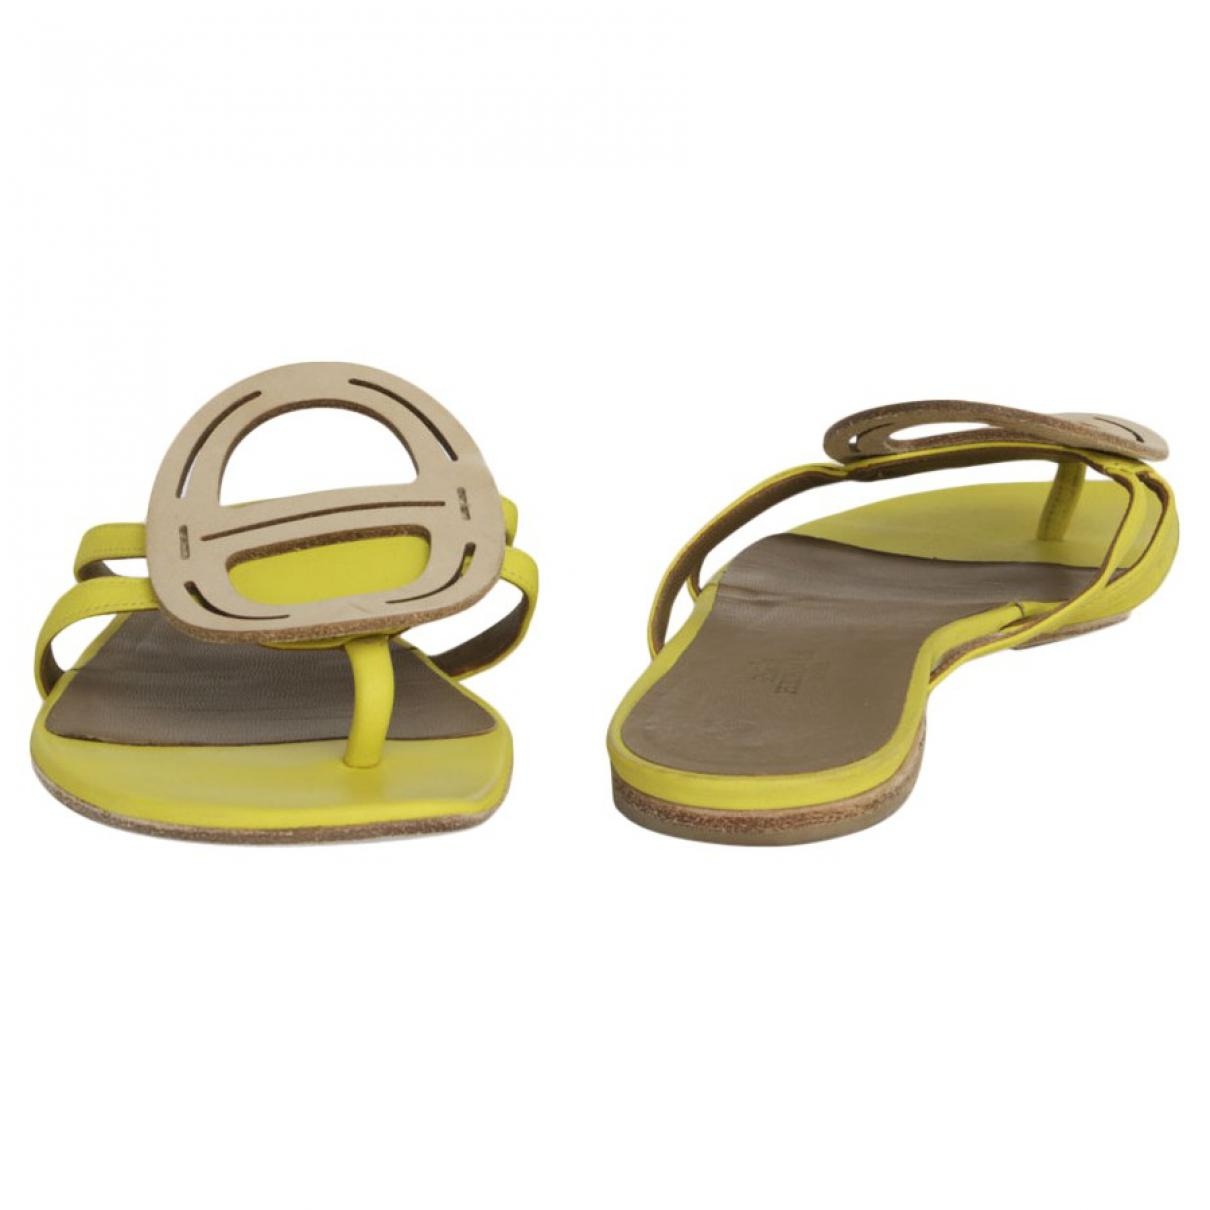 0044932f2eff Hermès Yellow Leather Sandals in Yellow - Lyst